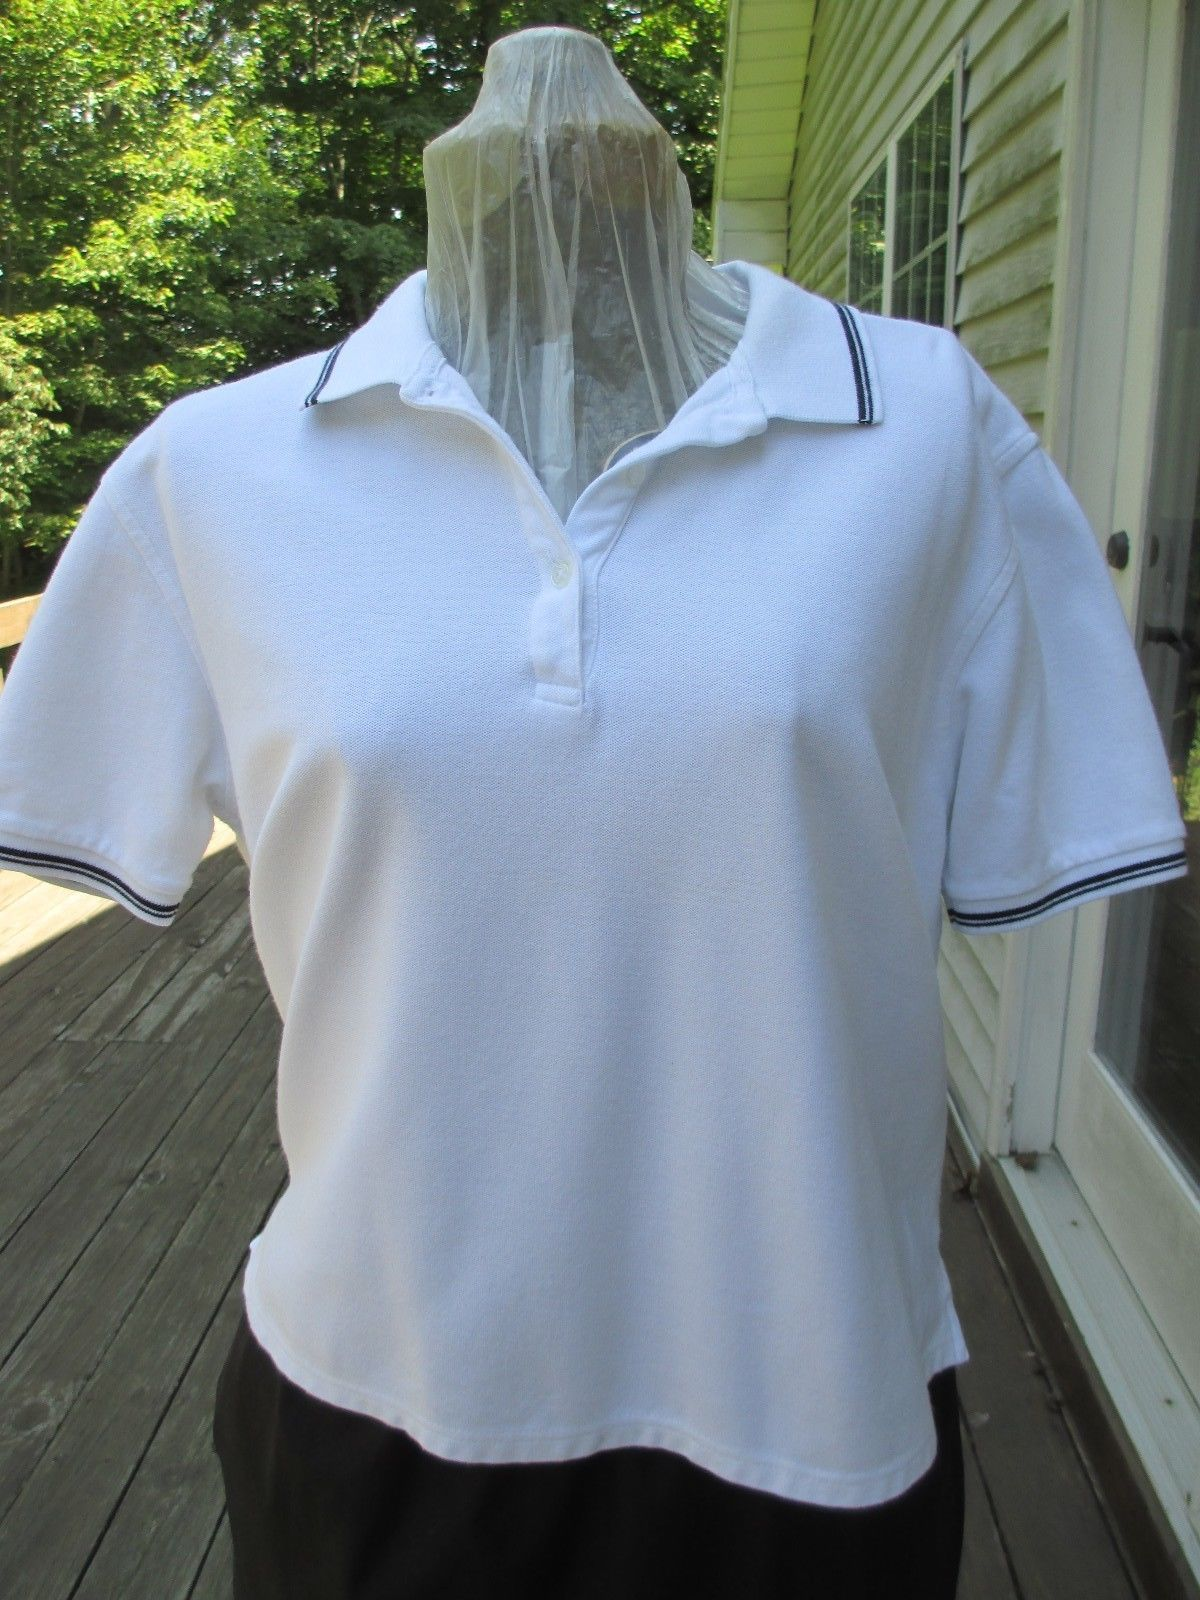 Karen Scott White Top with Navy Trim on Sleeves and Collar Label reads : Karen S